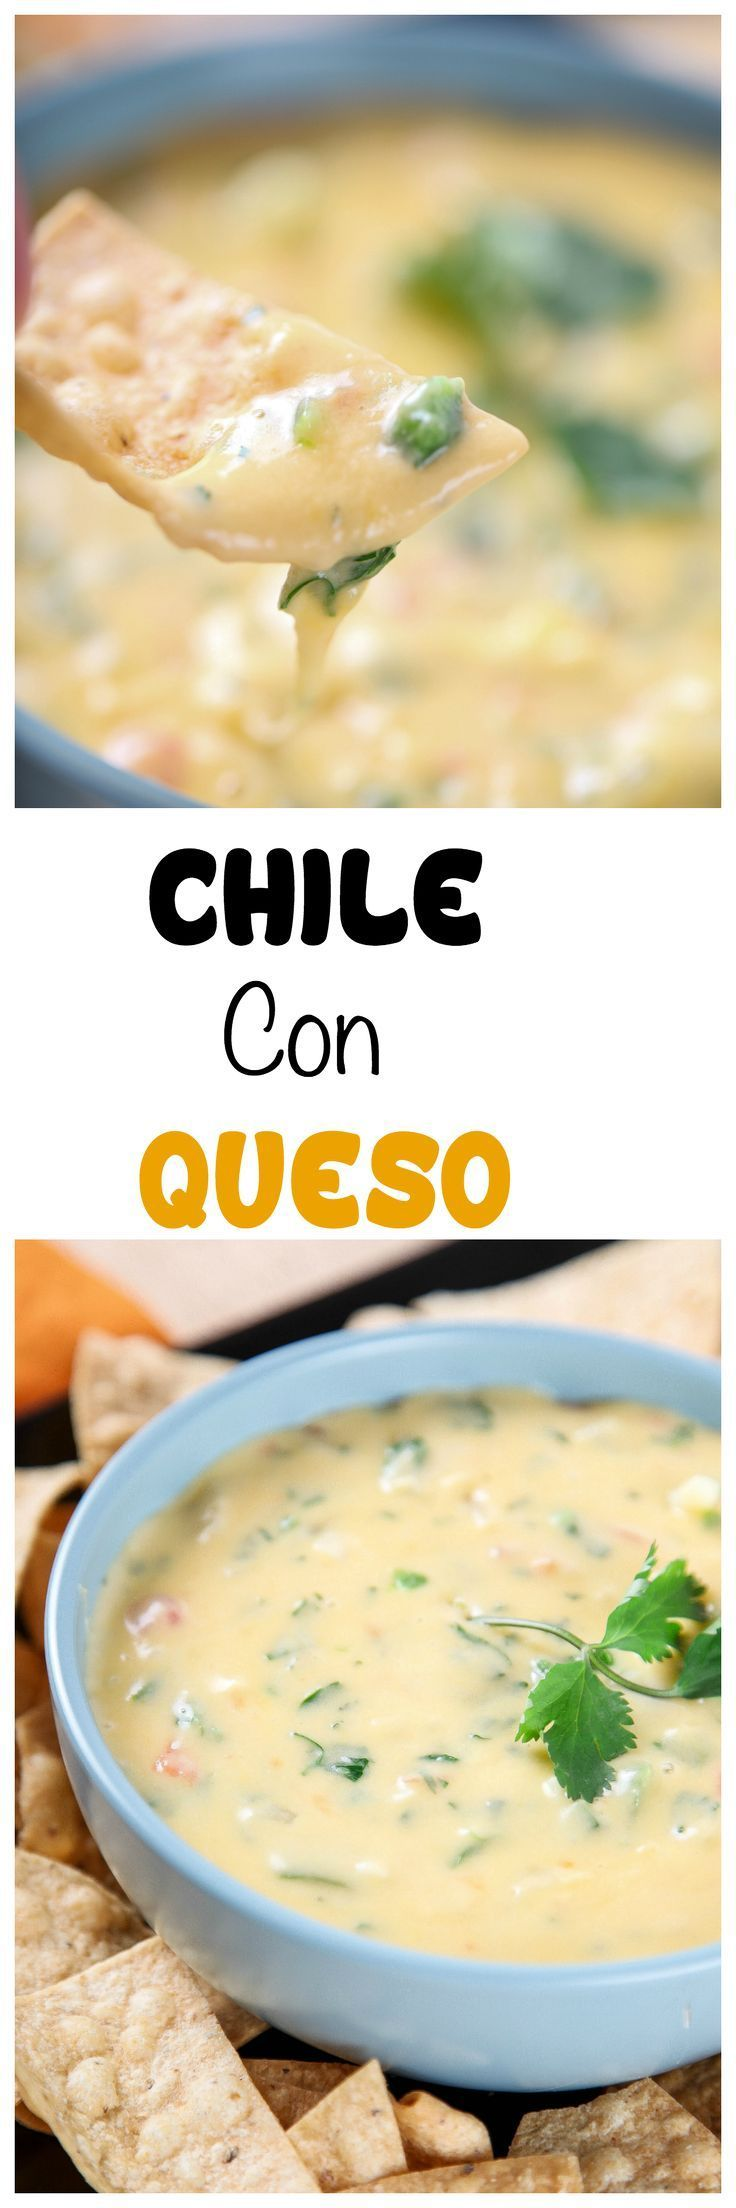 Chile Con Queso Dip: Melty gooey cheese dip that is perfect for Taco Tuesday! 100% from scratch, no Velveeta or other processed cheese.